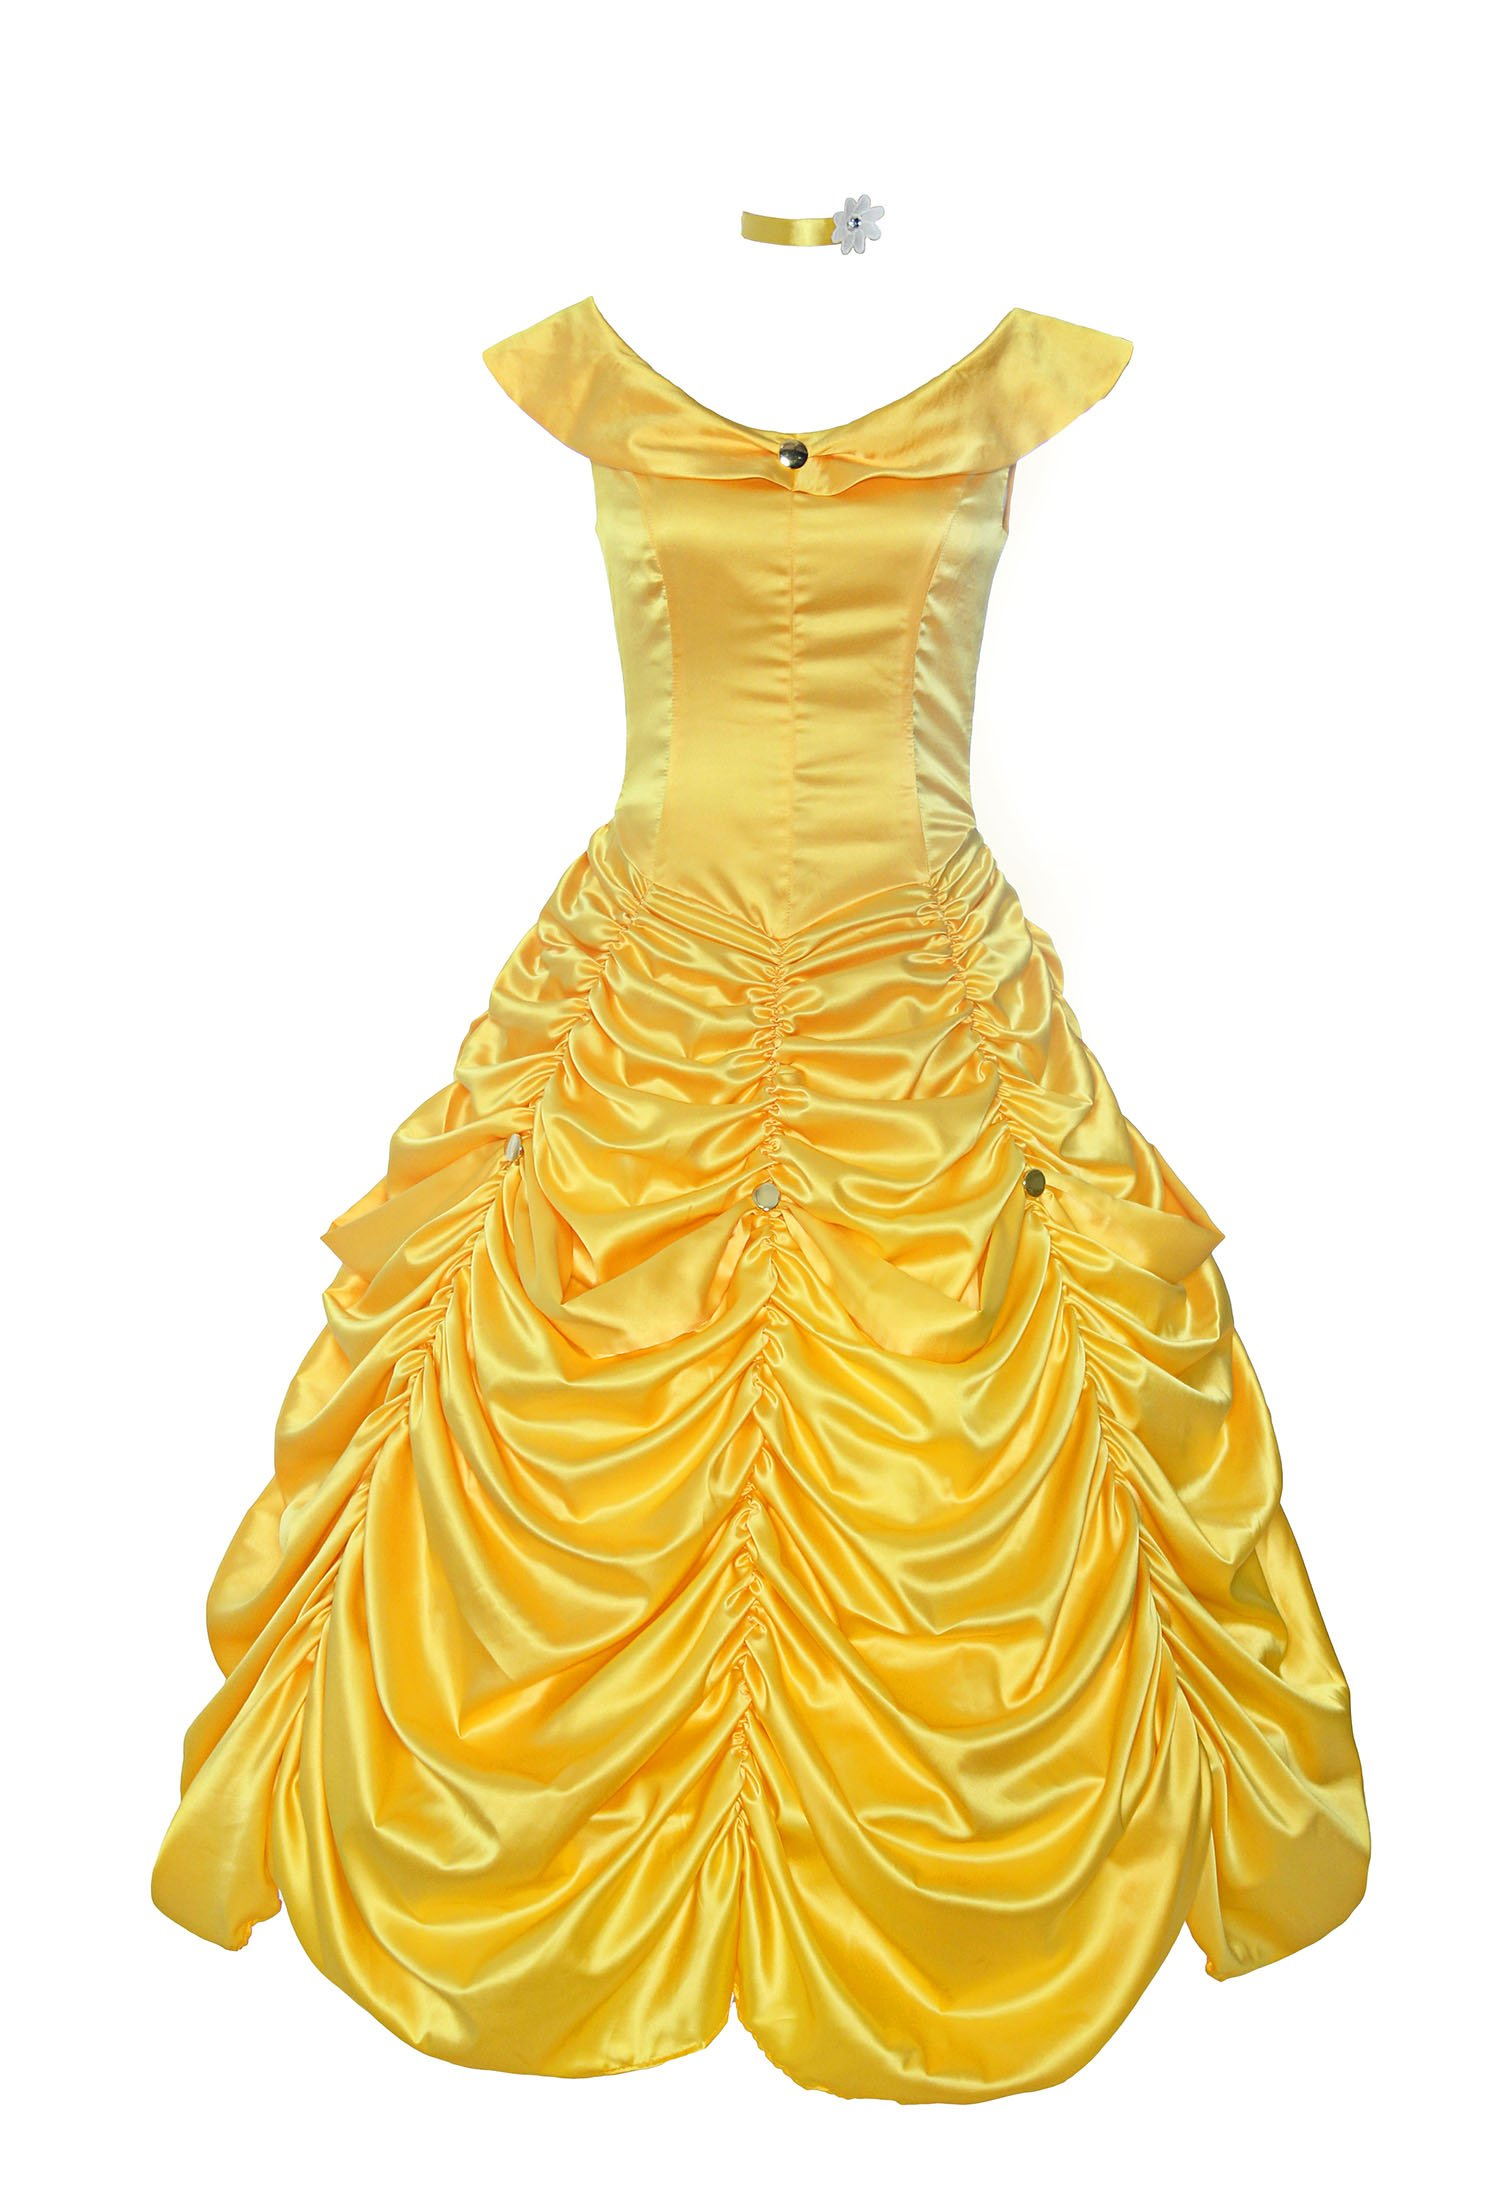 ReliBeauty Womens Princess Belle Costume Layered Dress up, Yellow, 4-6 by ReliBeauty